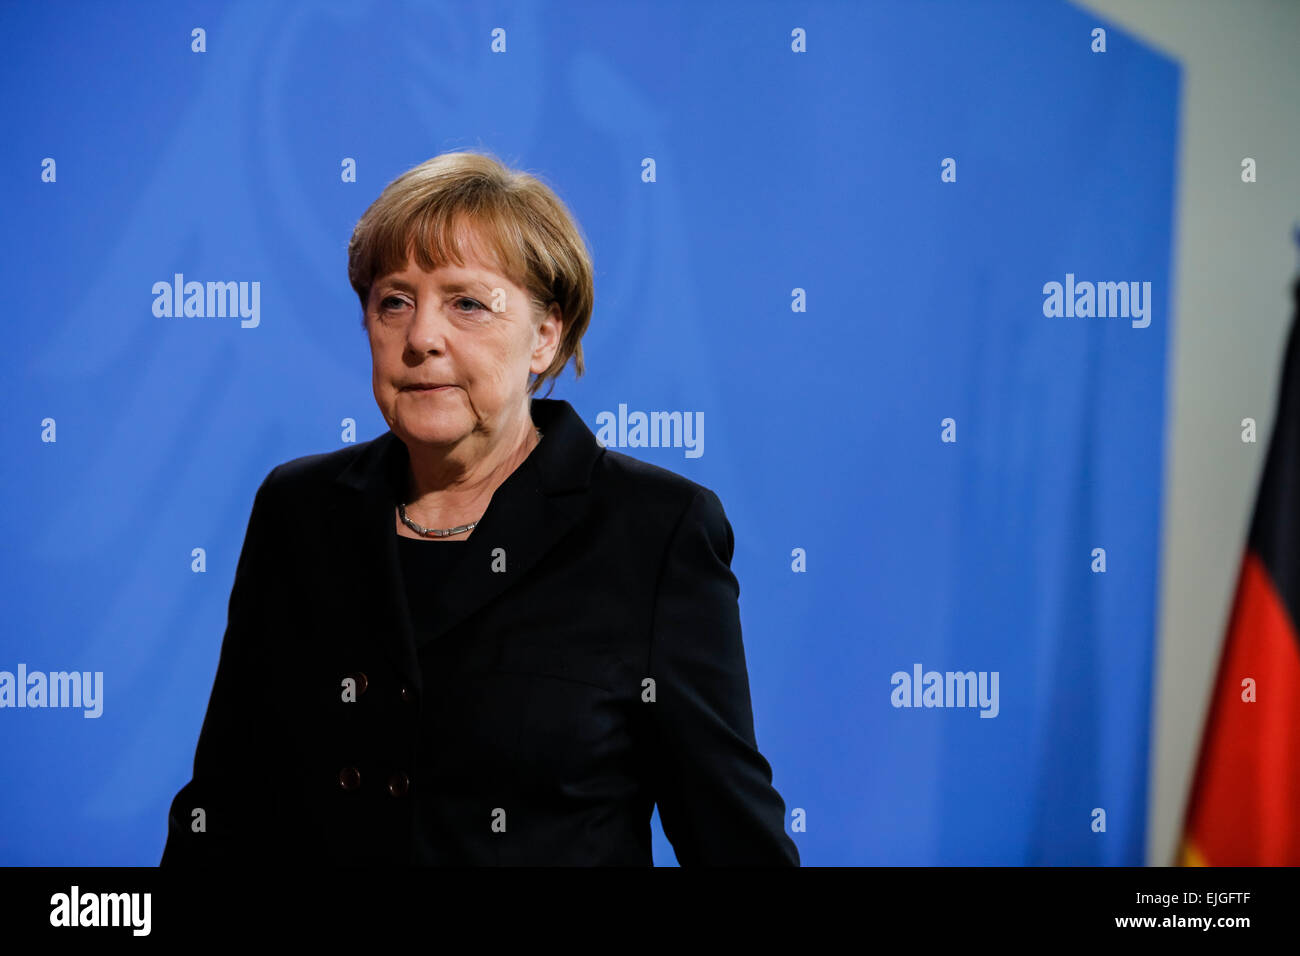 Berlin, Germany. 26th Mar, 2015. German chancellor give a statement after the terrible new news about the airplane - Stock Image